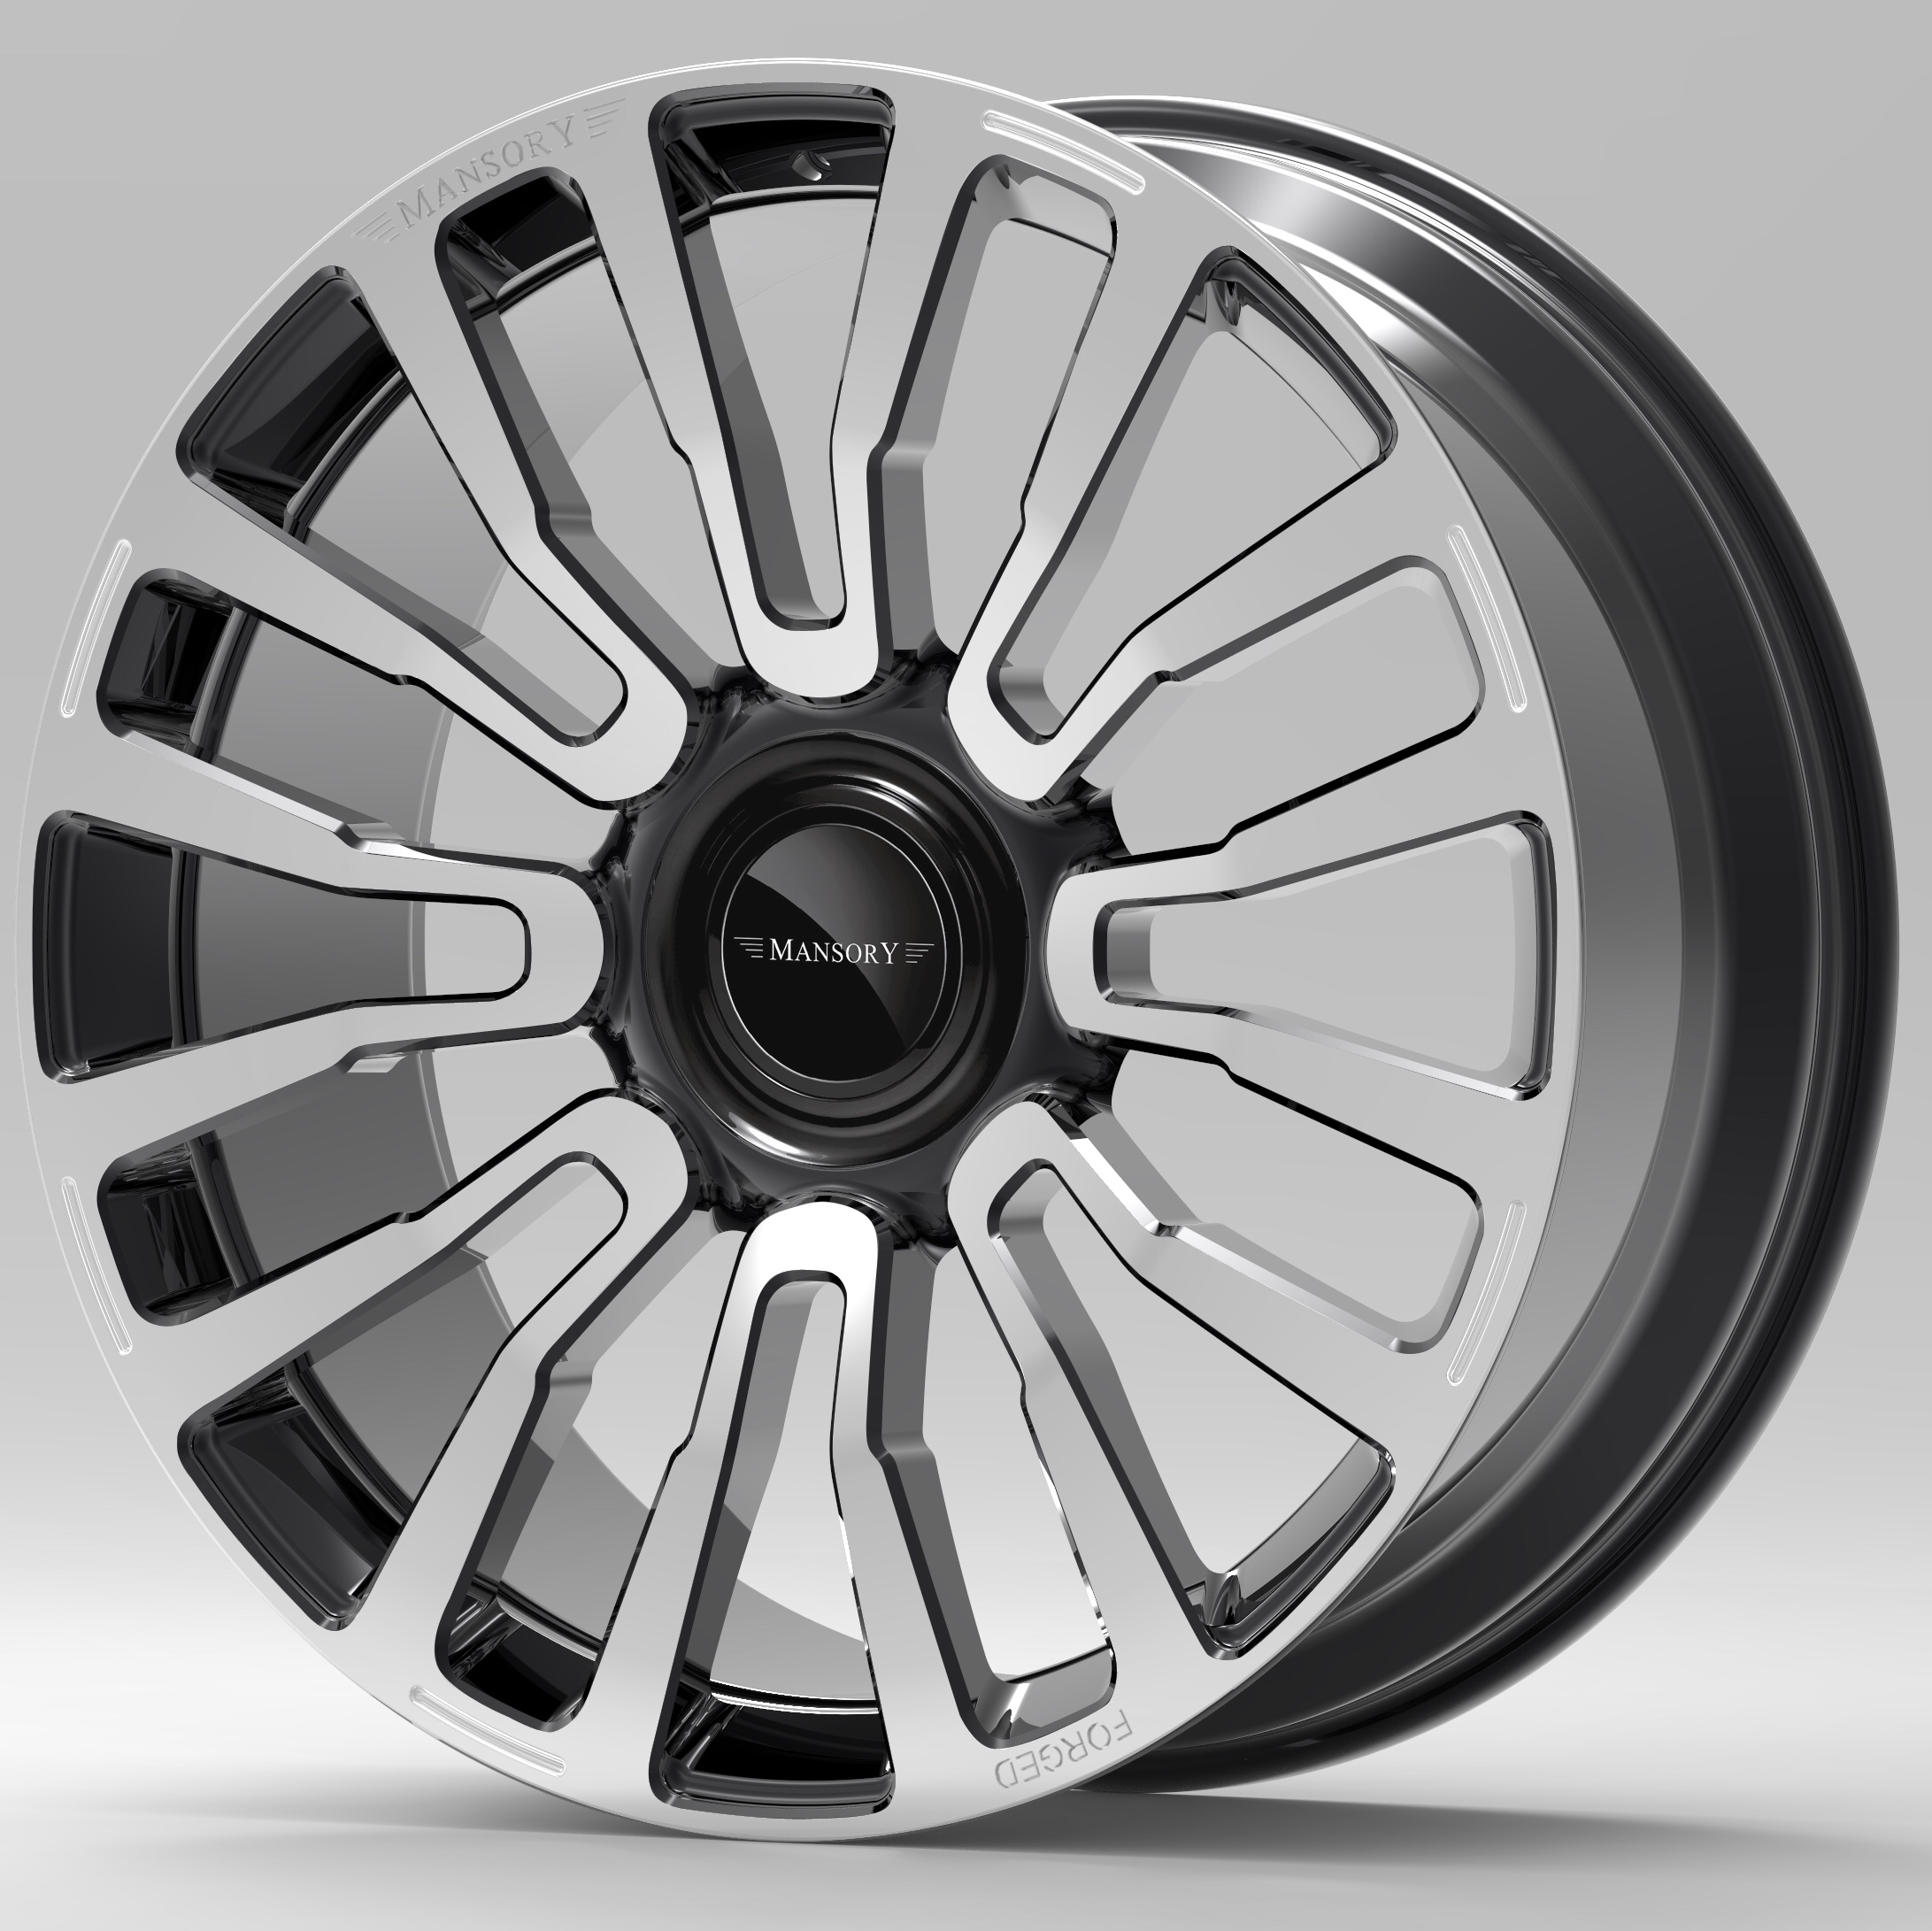 mansory y.8 fully forged wheel